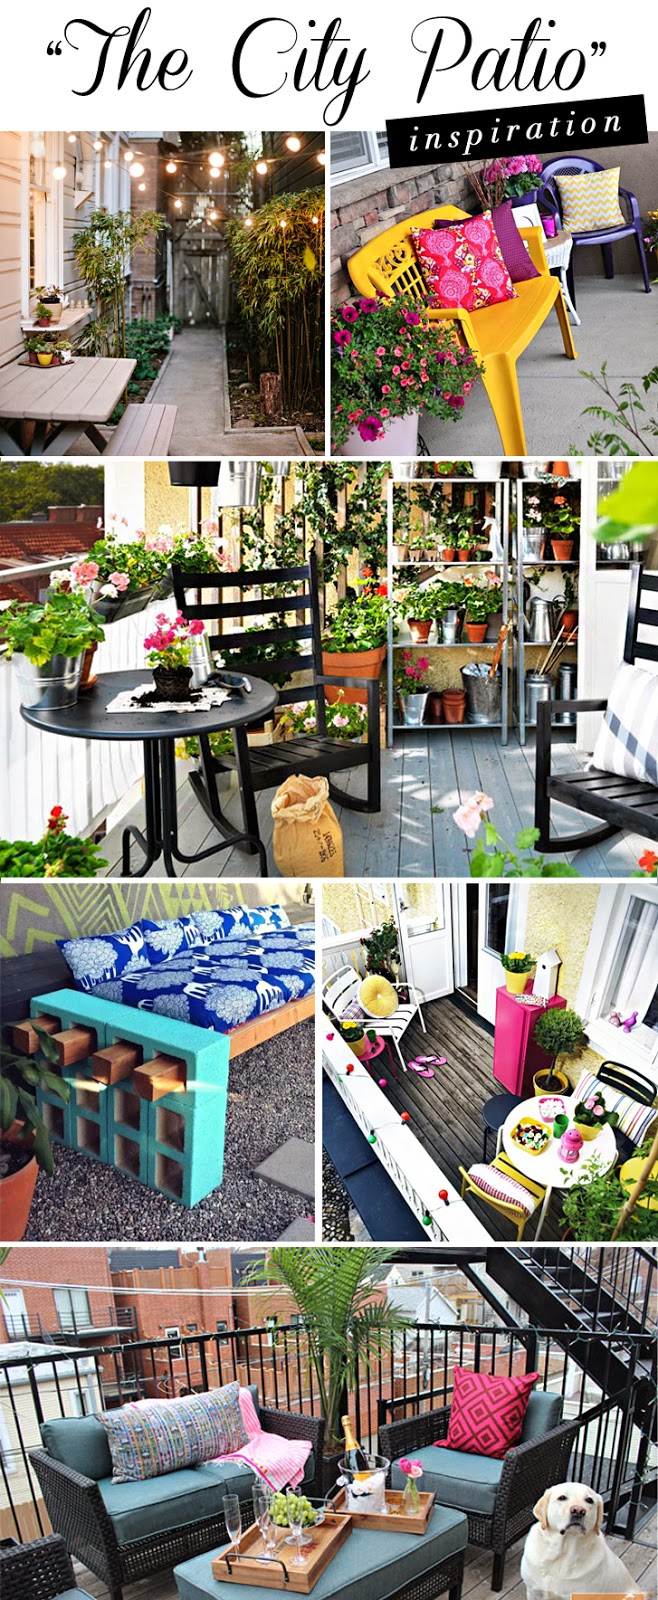 thecitypatio-inspiration-final1.jpg